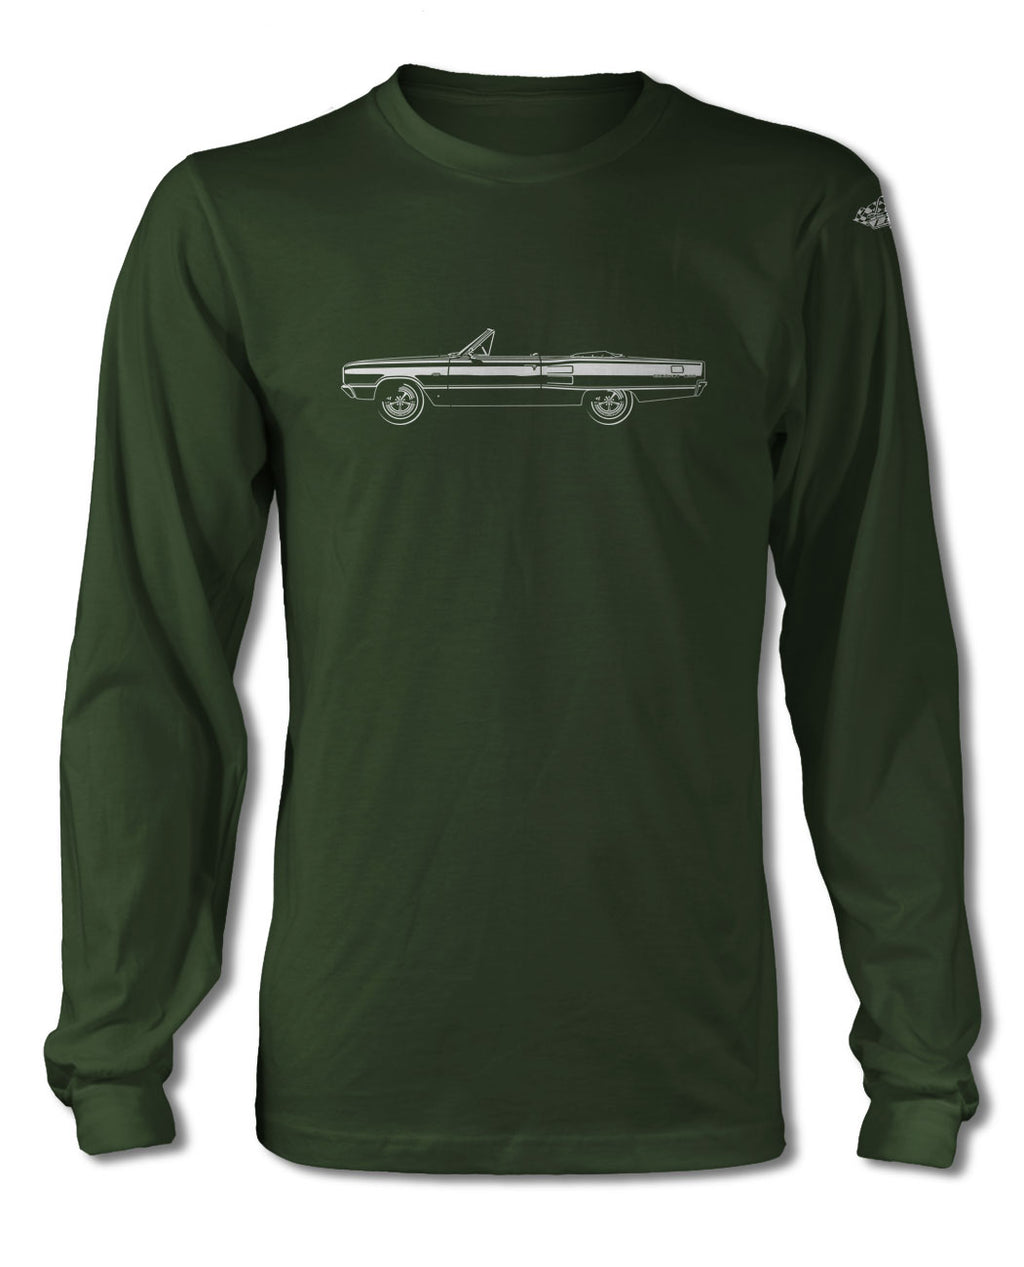 1967 Dodge Coronet 500 Convertible T-Shirt - Long Sleeves - Side View